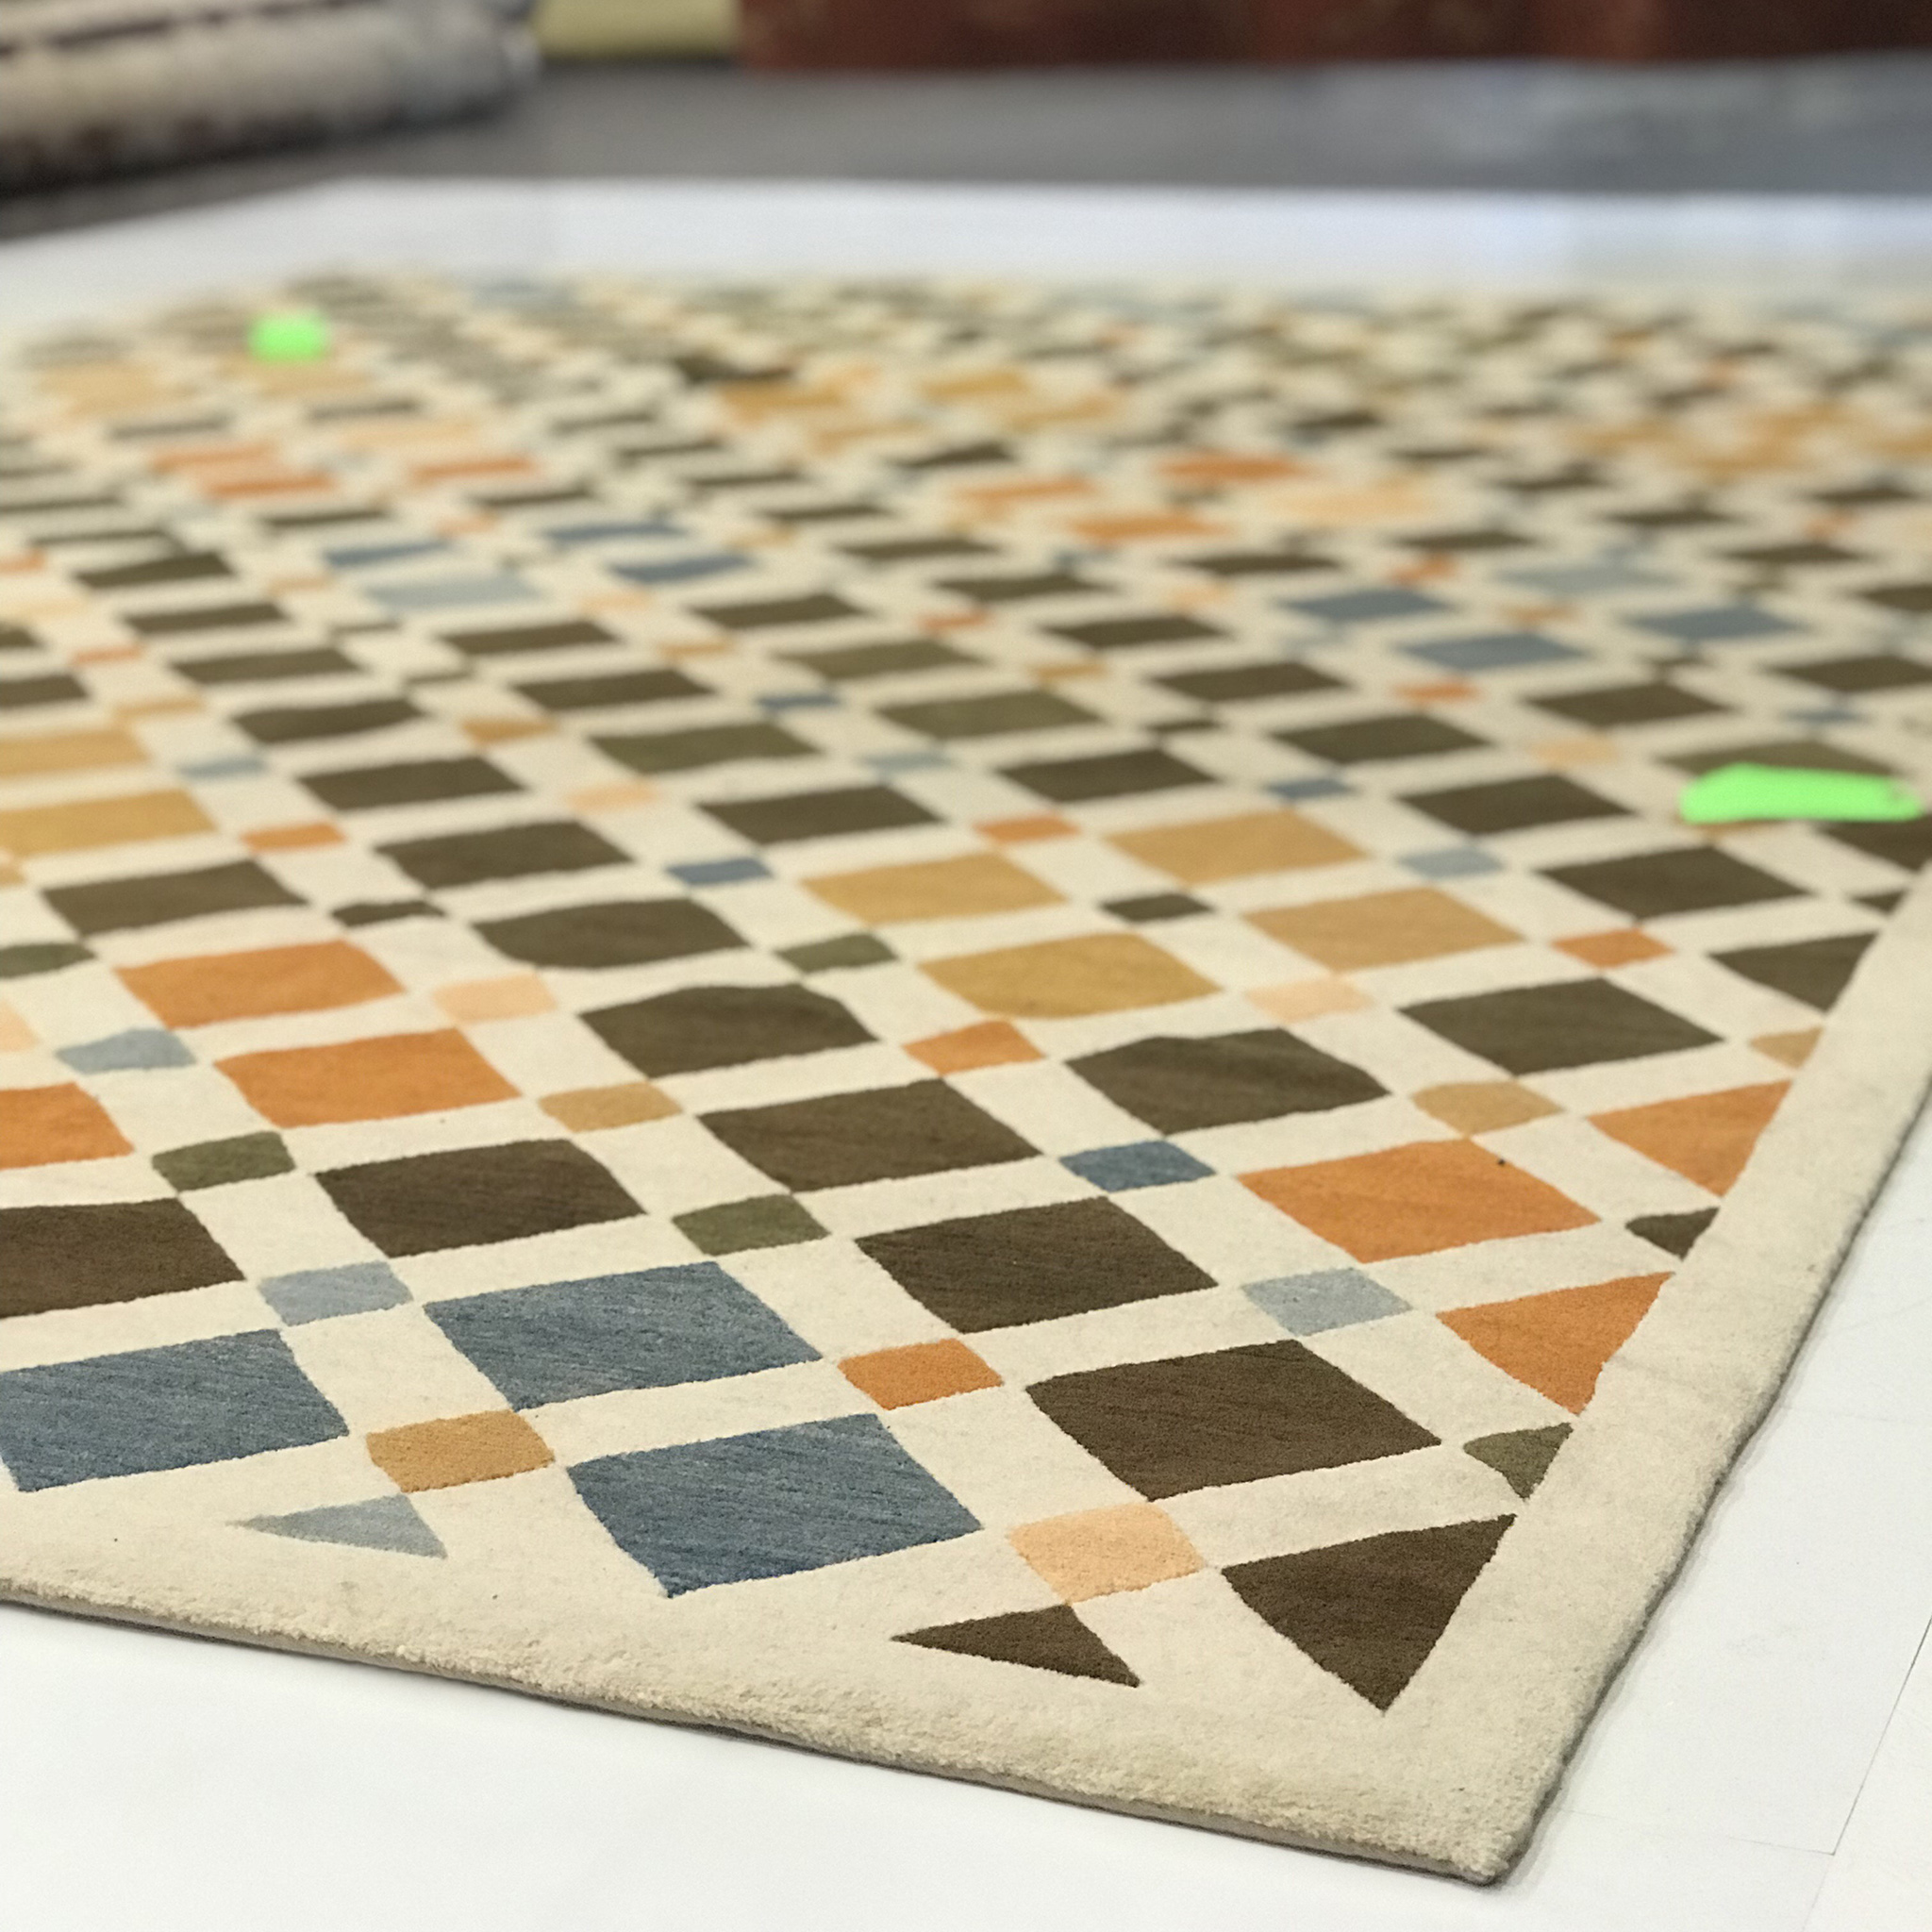 A trusted cleaner will thoroughly assess a rug or carpet prior to cleaning. Here you see 'Tile' laid flat for examination. The green tags were attached prior to shipment in order to show areas requiring extra attention. | Image courtesy of Weaver & Loom.